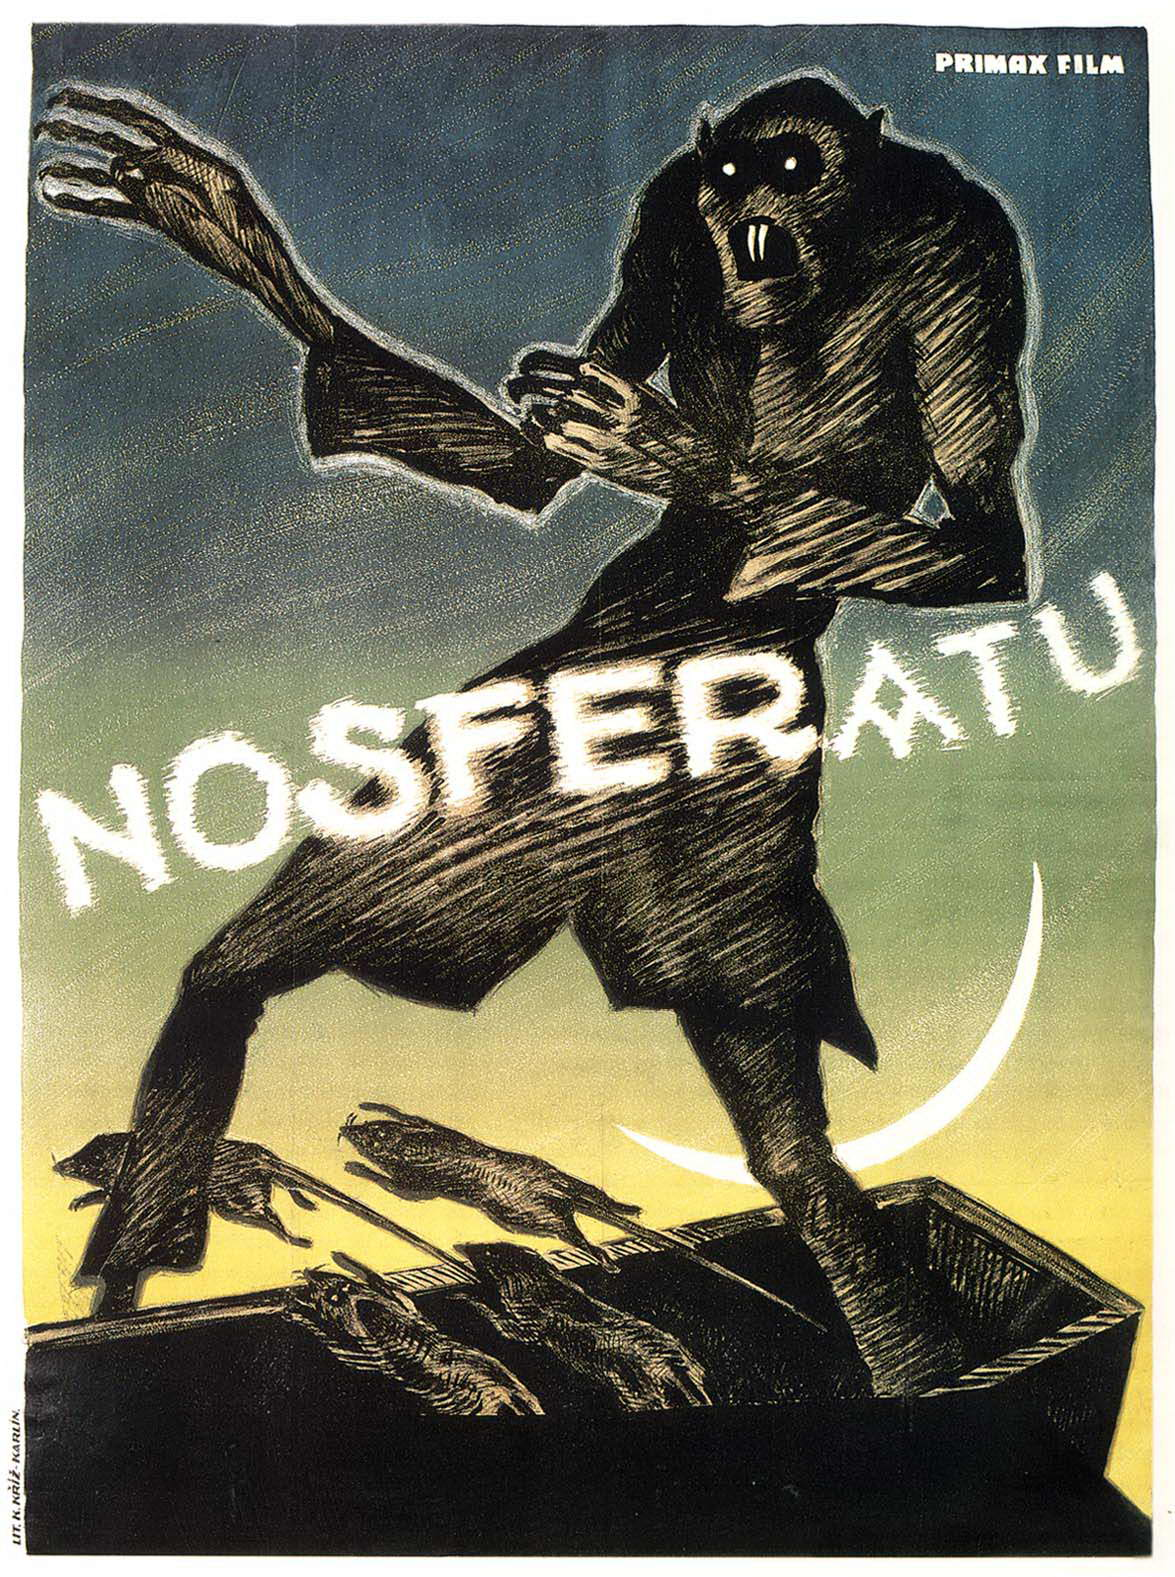 October 15th: Nosferatu (1922)